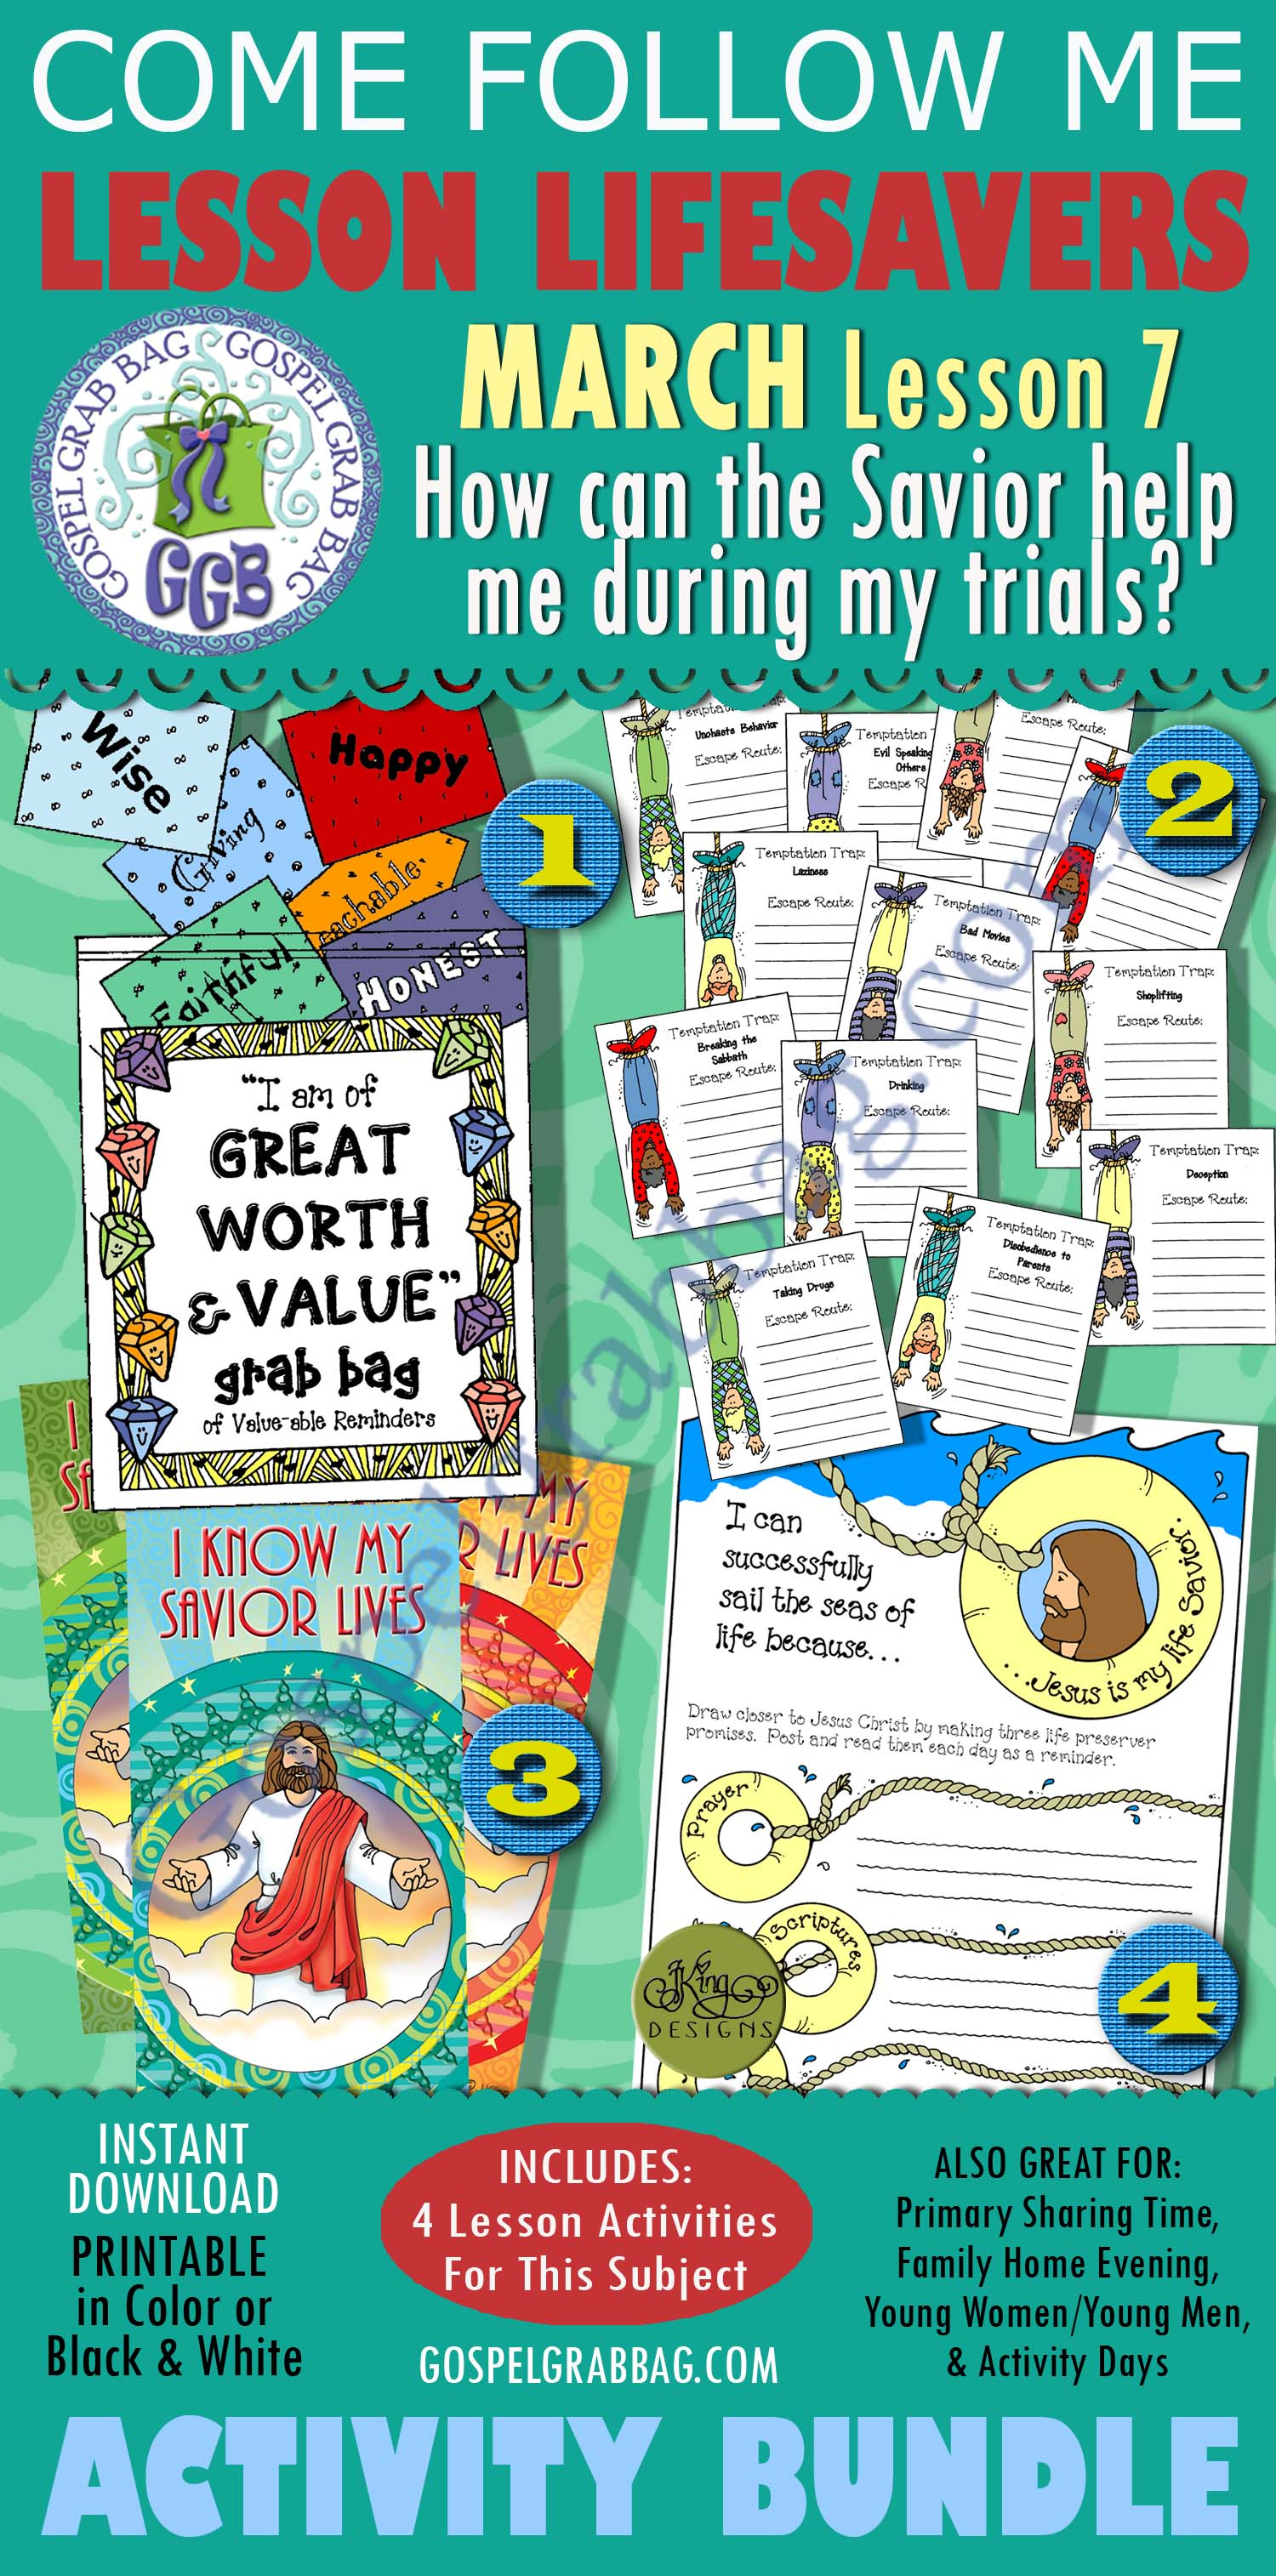 """$4.00 MARCH Lesson 7 - Come Follow Me """"How can the Savior help me during my trials?"""" BUNDLE Young Women handouts/activities, GospelGrabBag.com"""